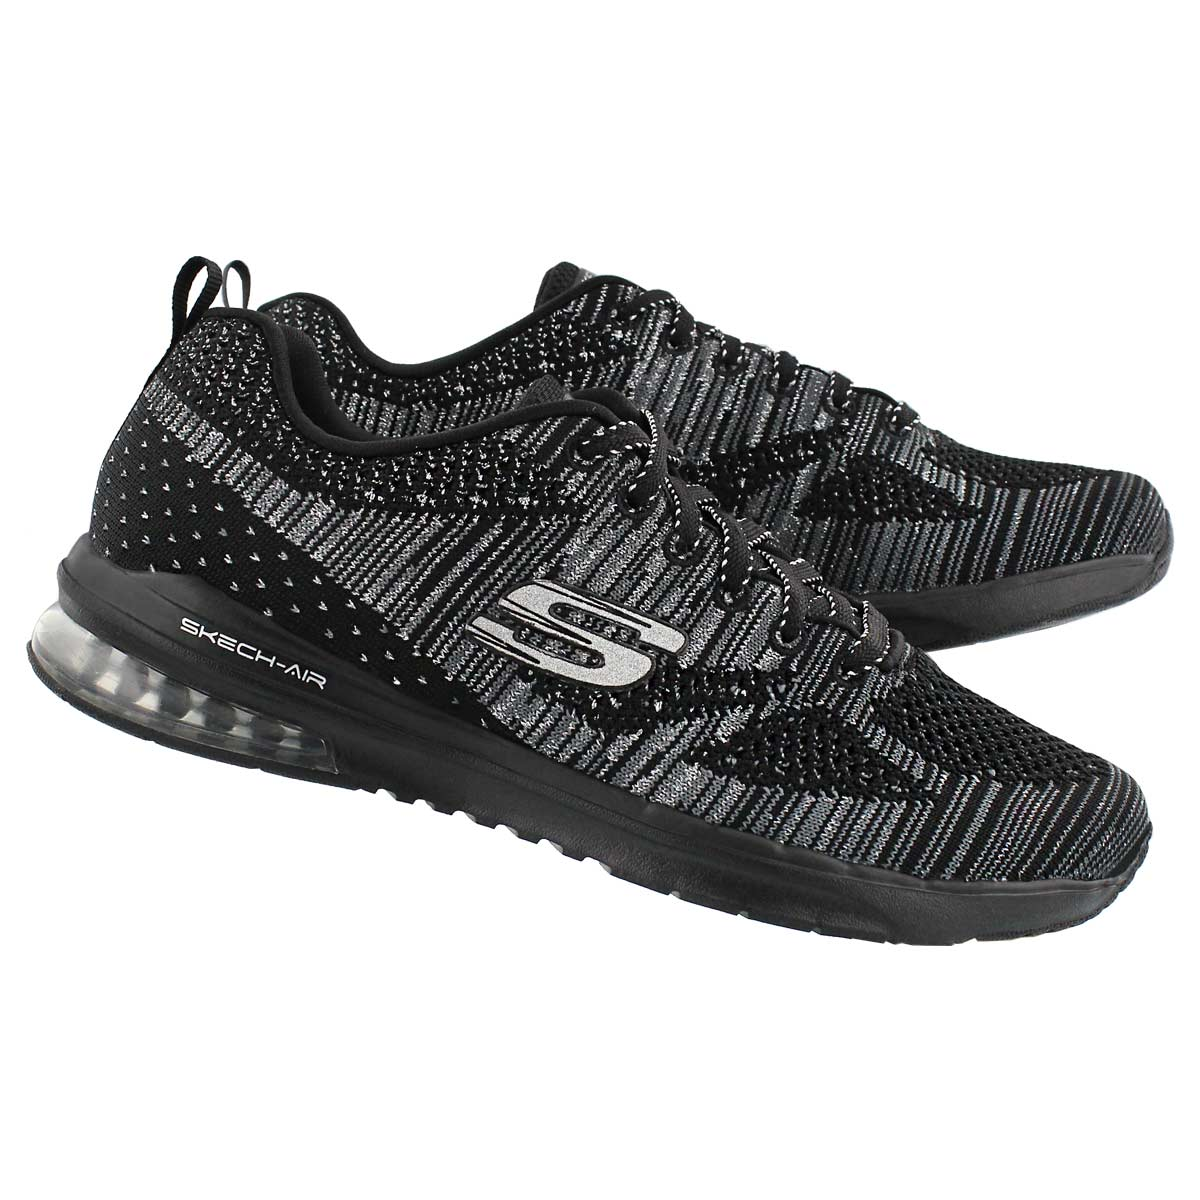 Lds Stand Out black lace up sneaker